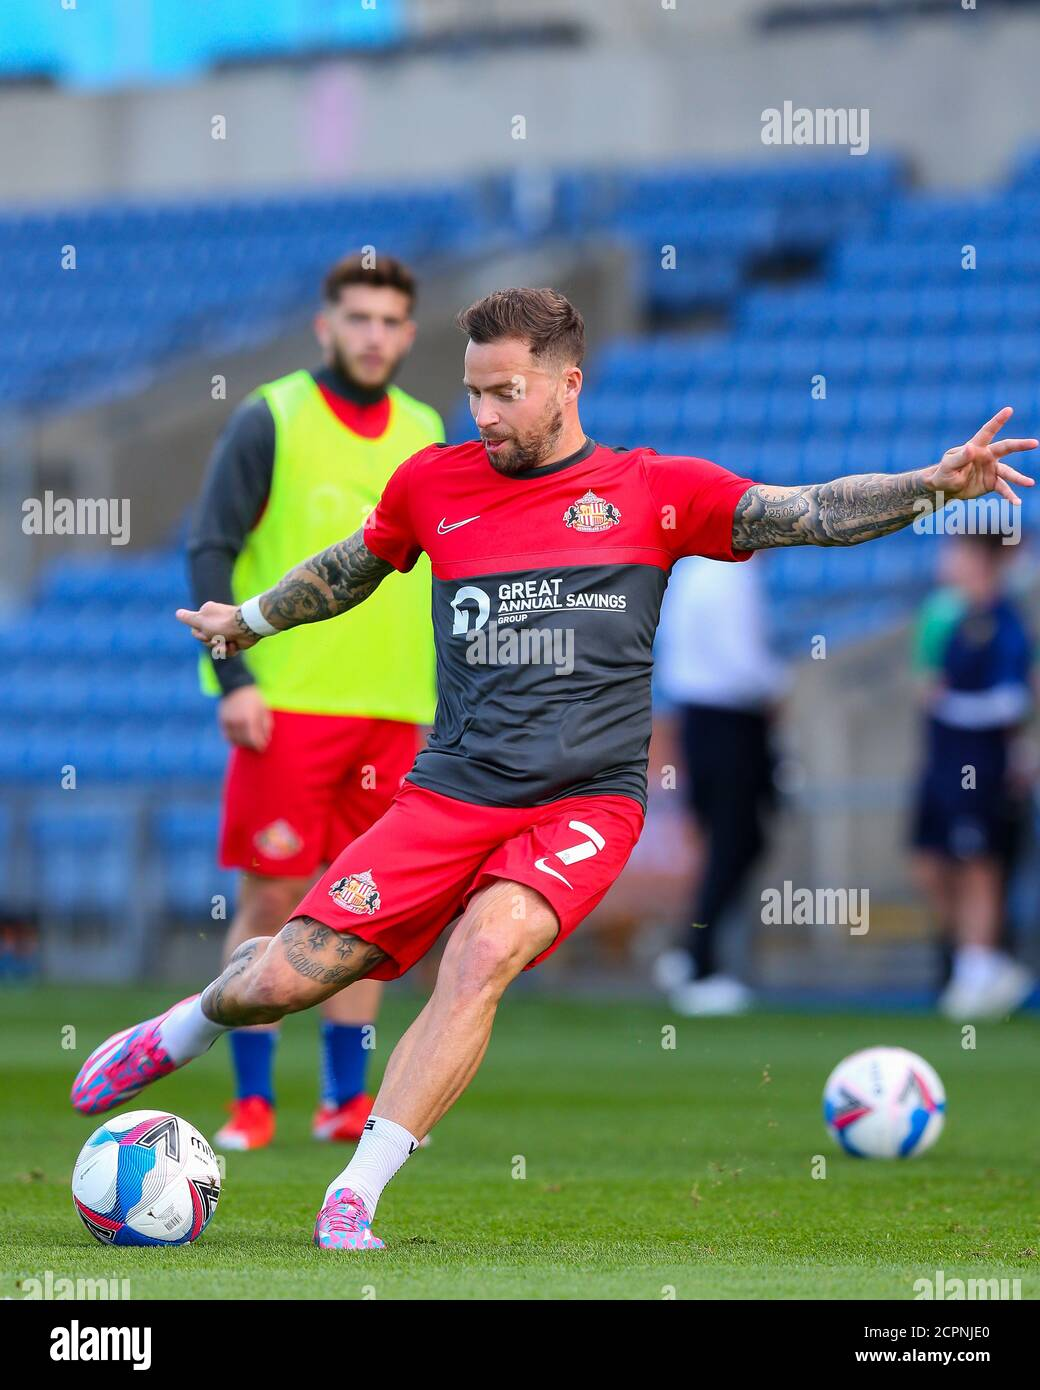 Oxford, UK. 19th Sep, 2020. Chris Maguire of Sunderland practises shooting before the Sky Bet League 1 behind closed doors match between Oxford United and Sunderland at the Kassam Stadium, Oxford, England on 19 September 2020. Photo by Nick Browning/PRiME Media Images. Credit: PRiME Media Images/Alamy Live News Stock Photo